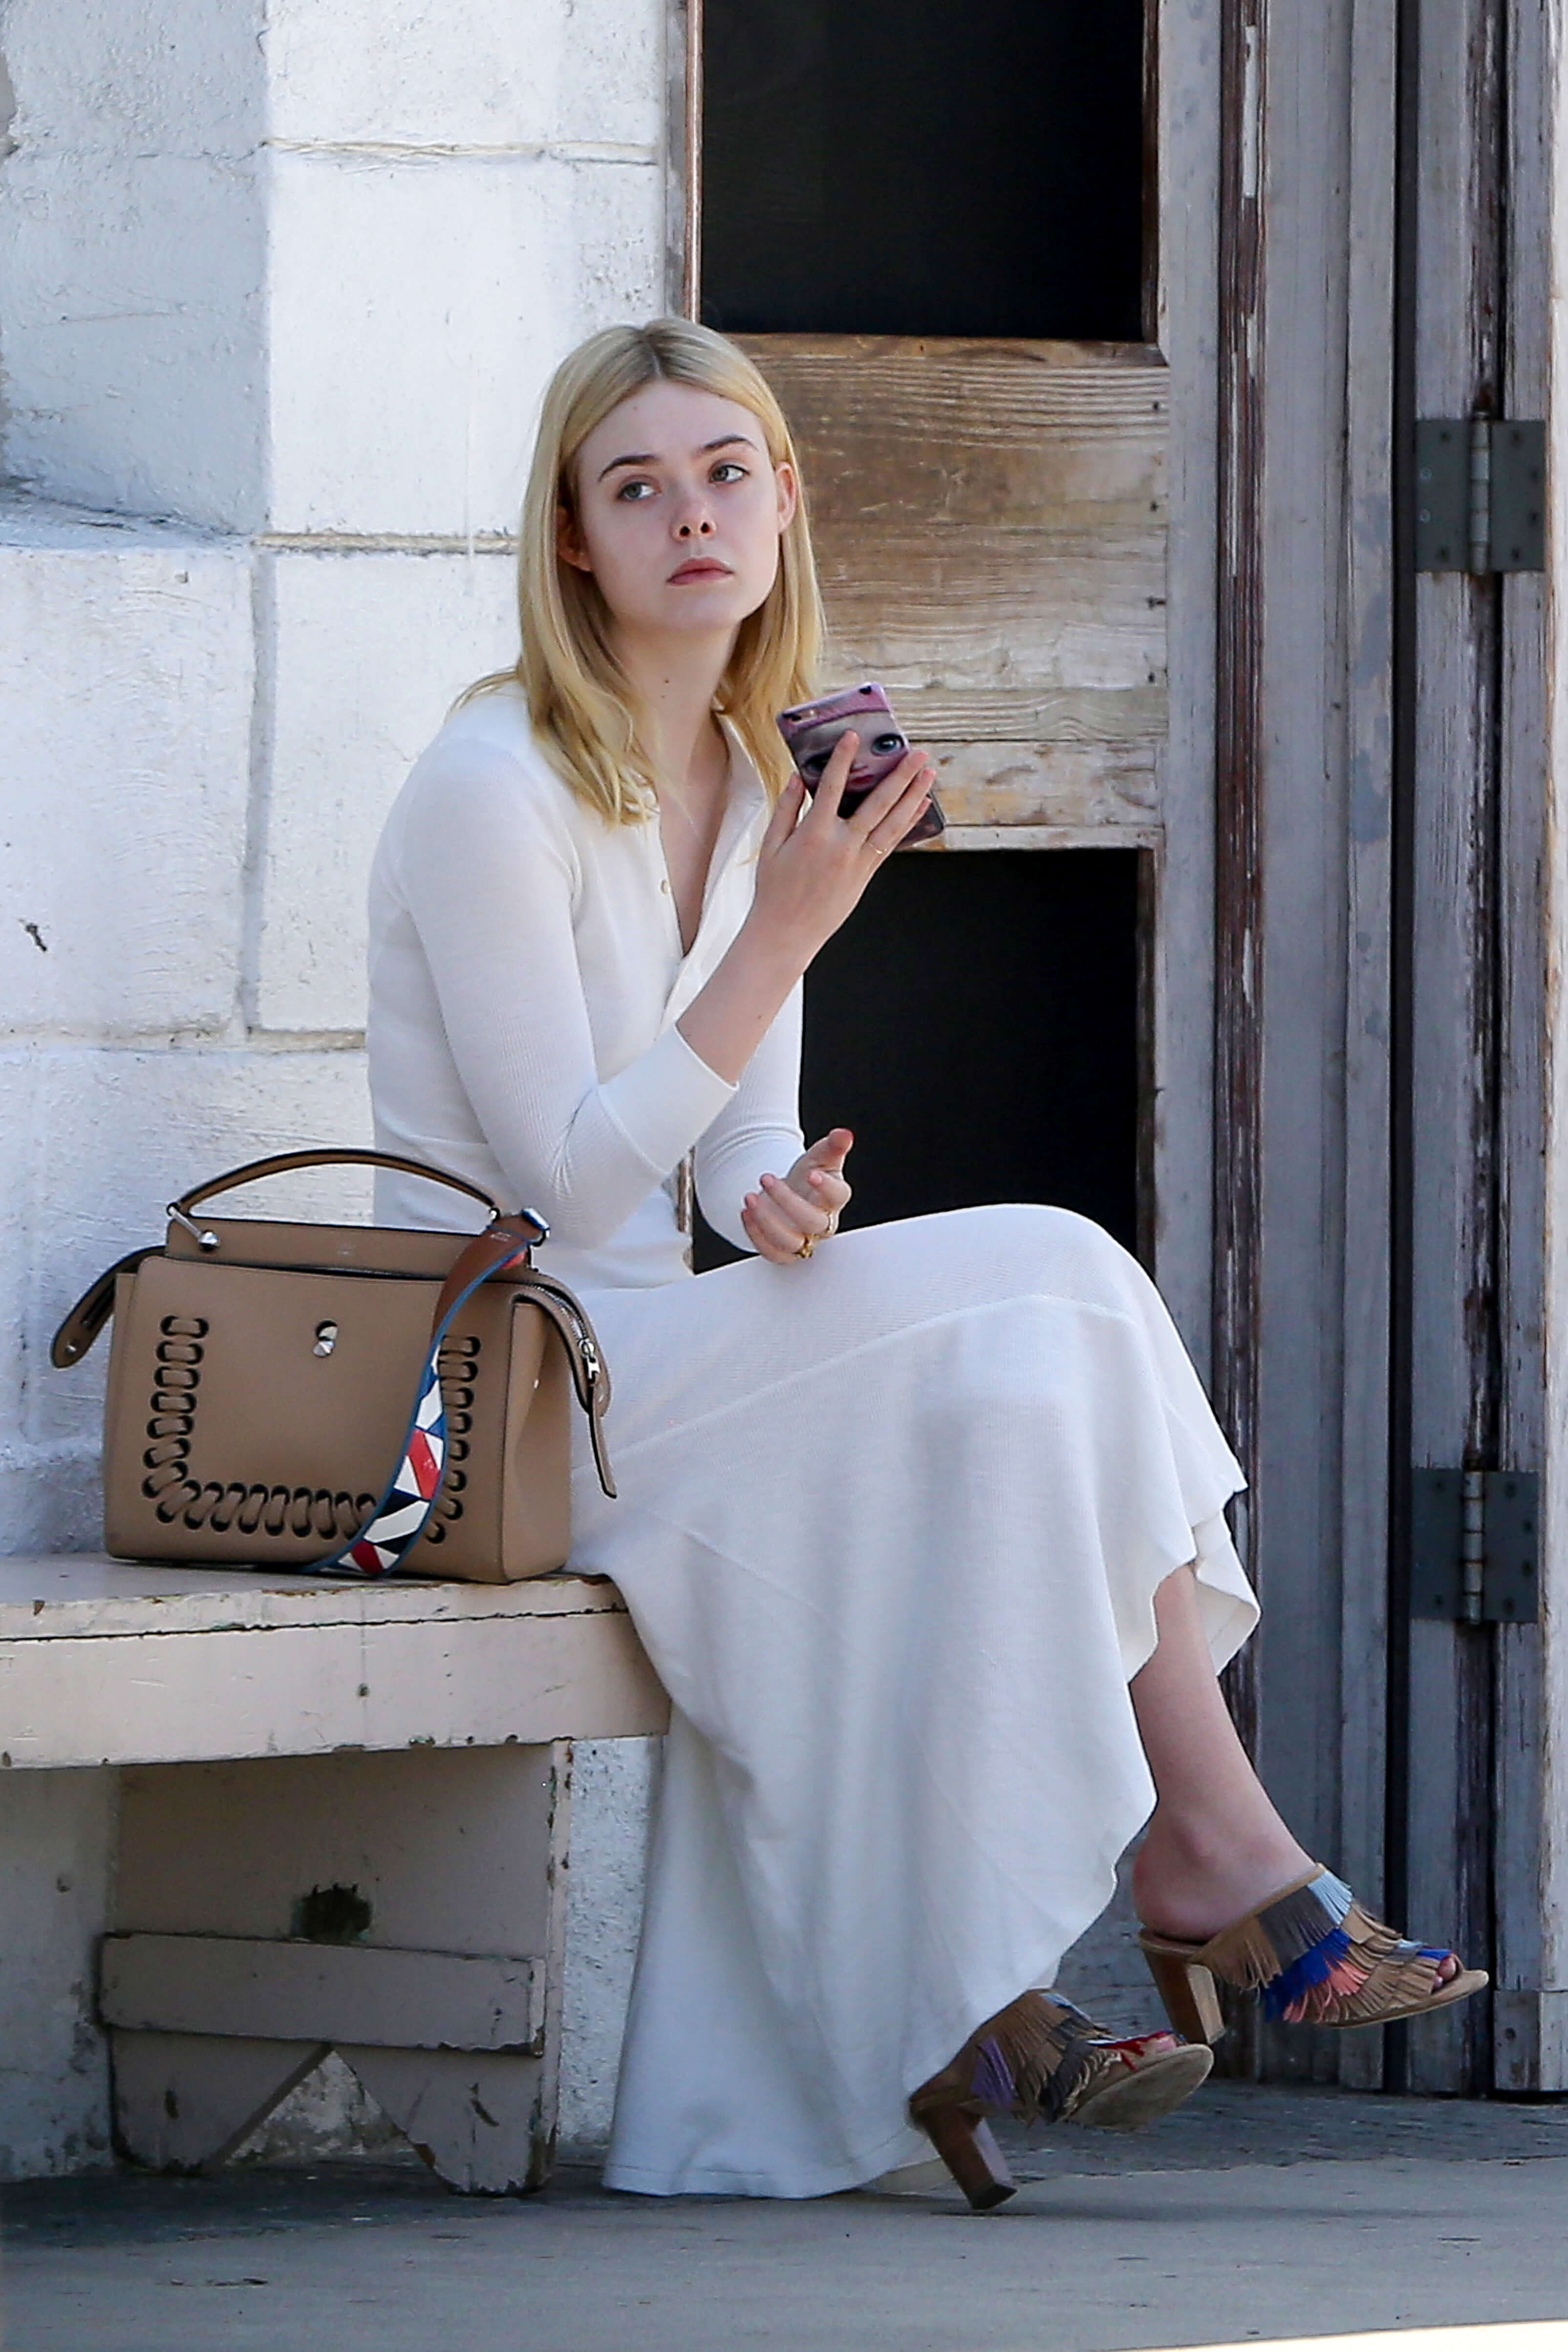 61 Sexy Elle Fanning Boobs Pictures Will Make Your Hands